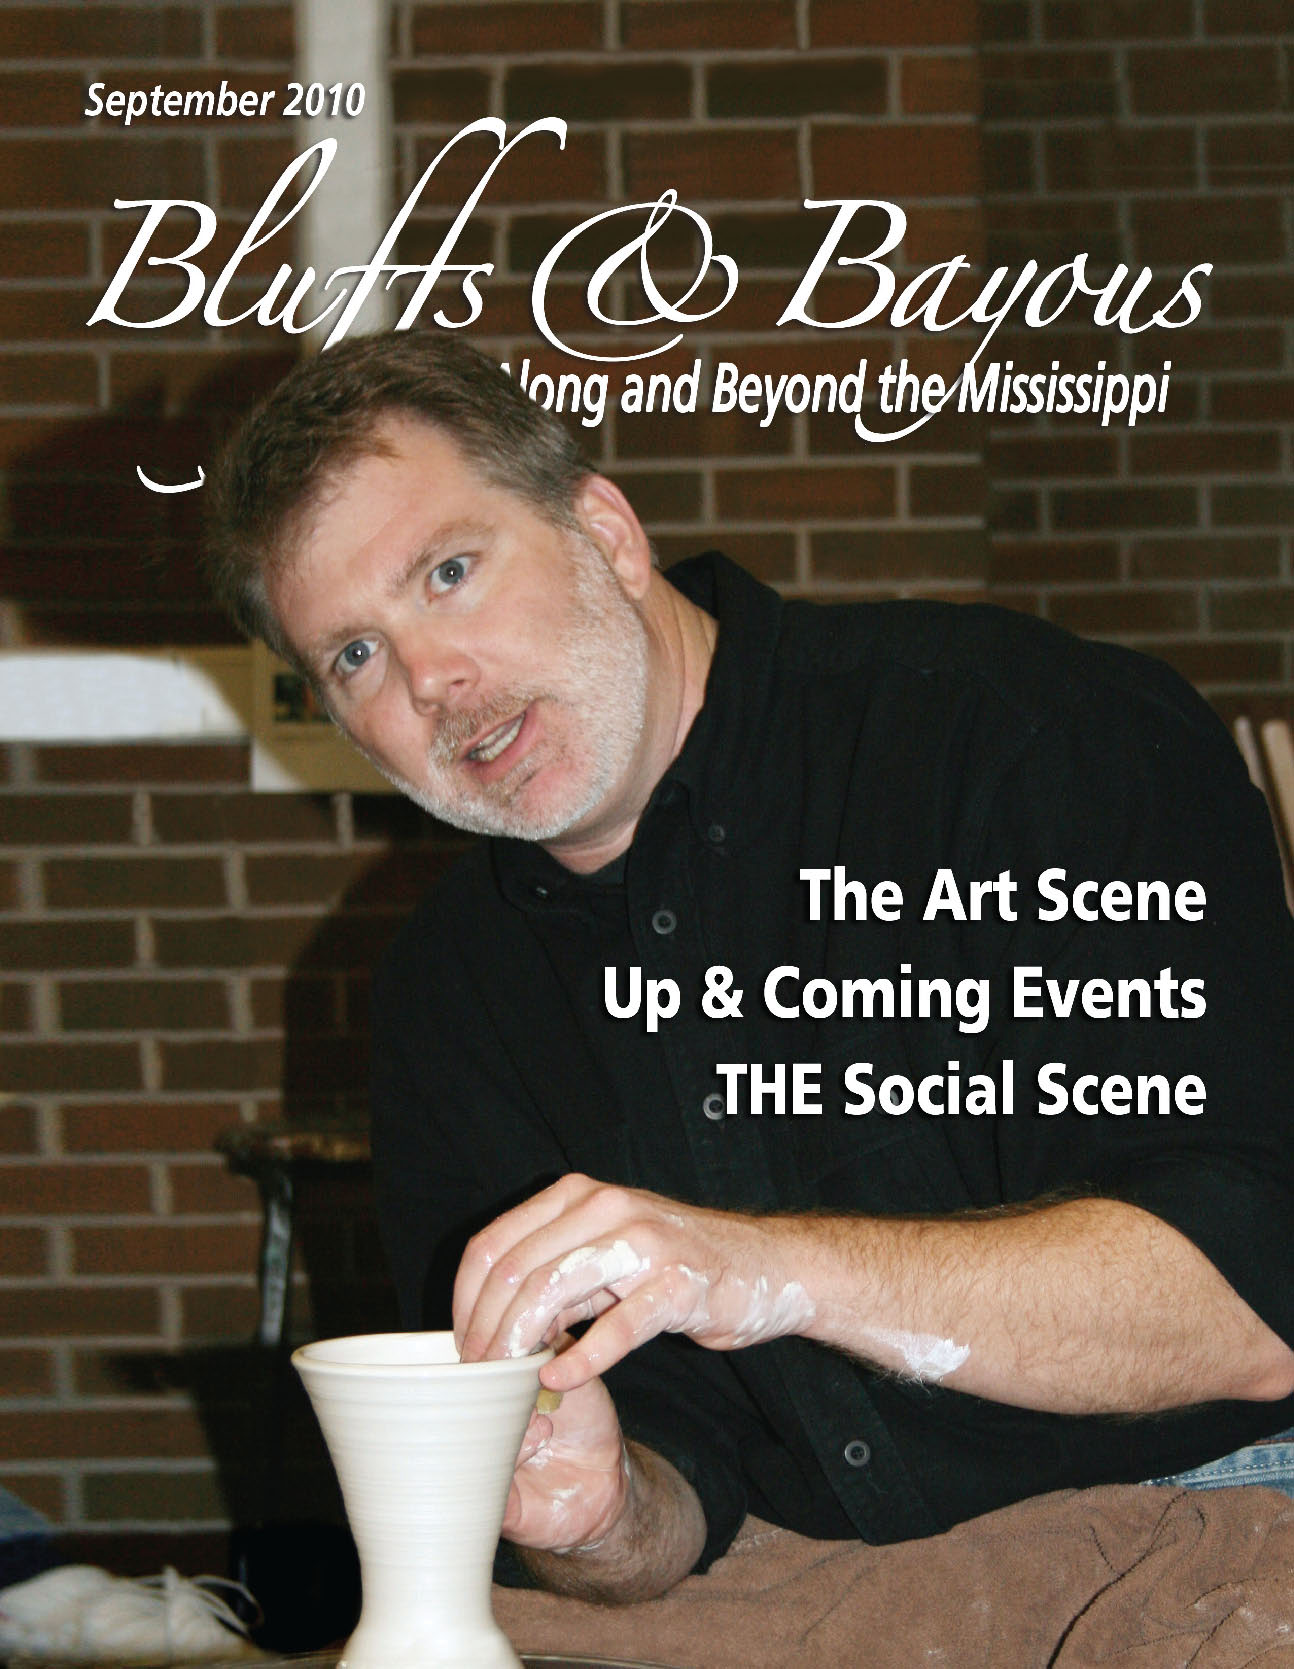 conner burns on cover of bluffs and bayous